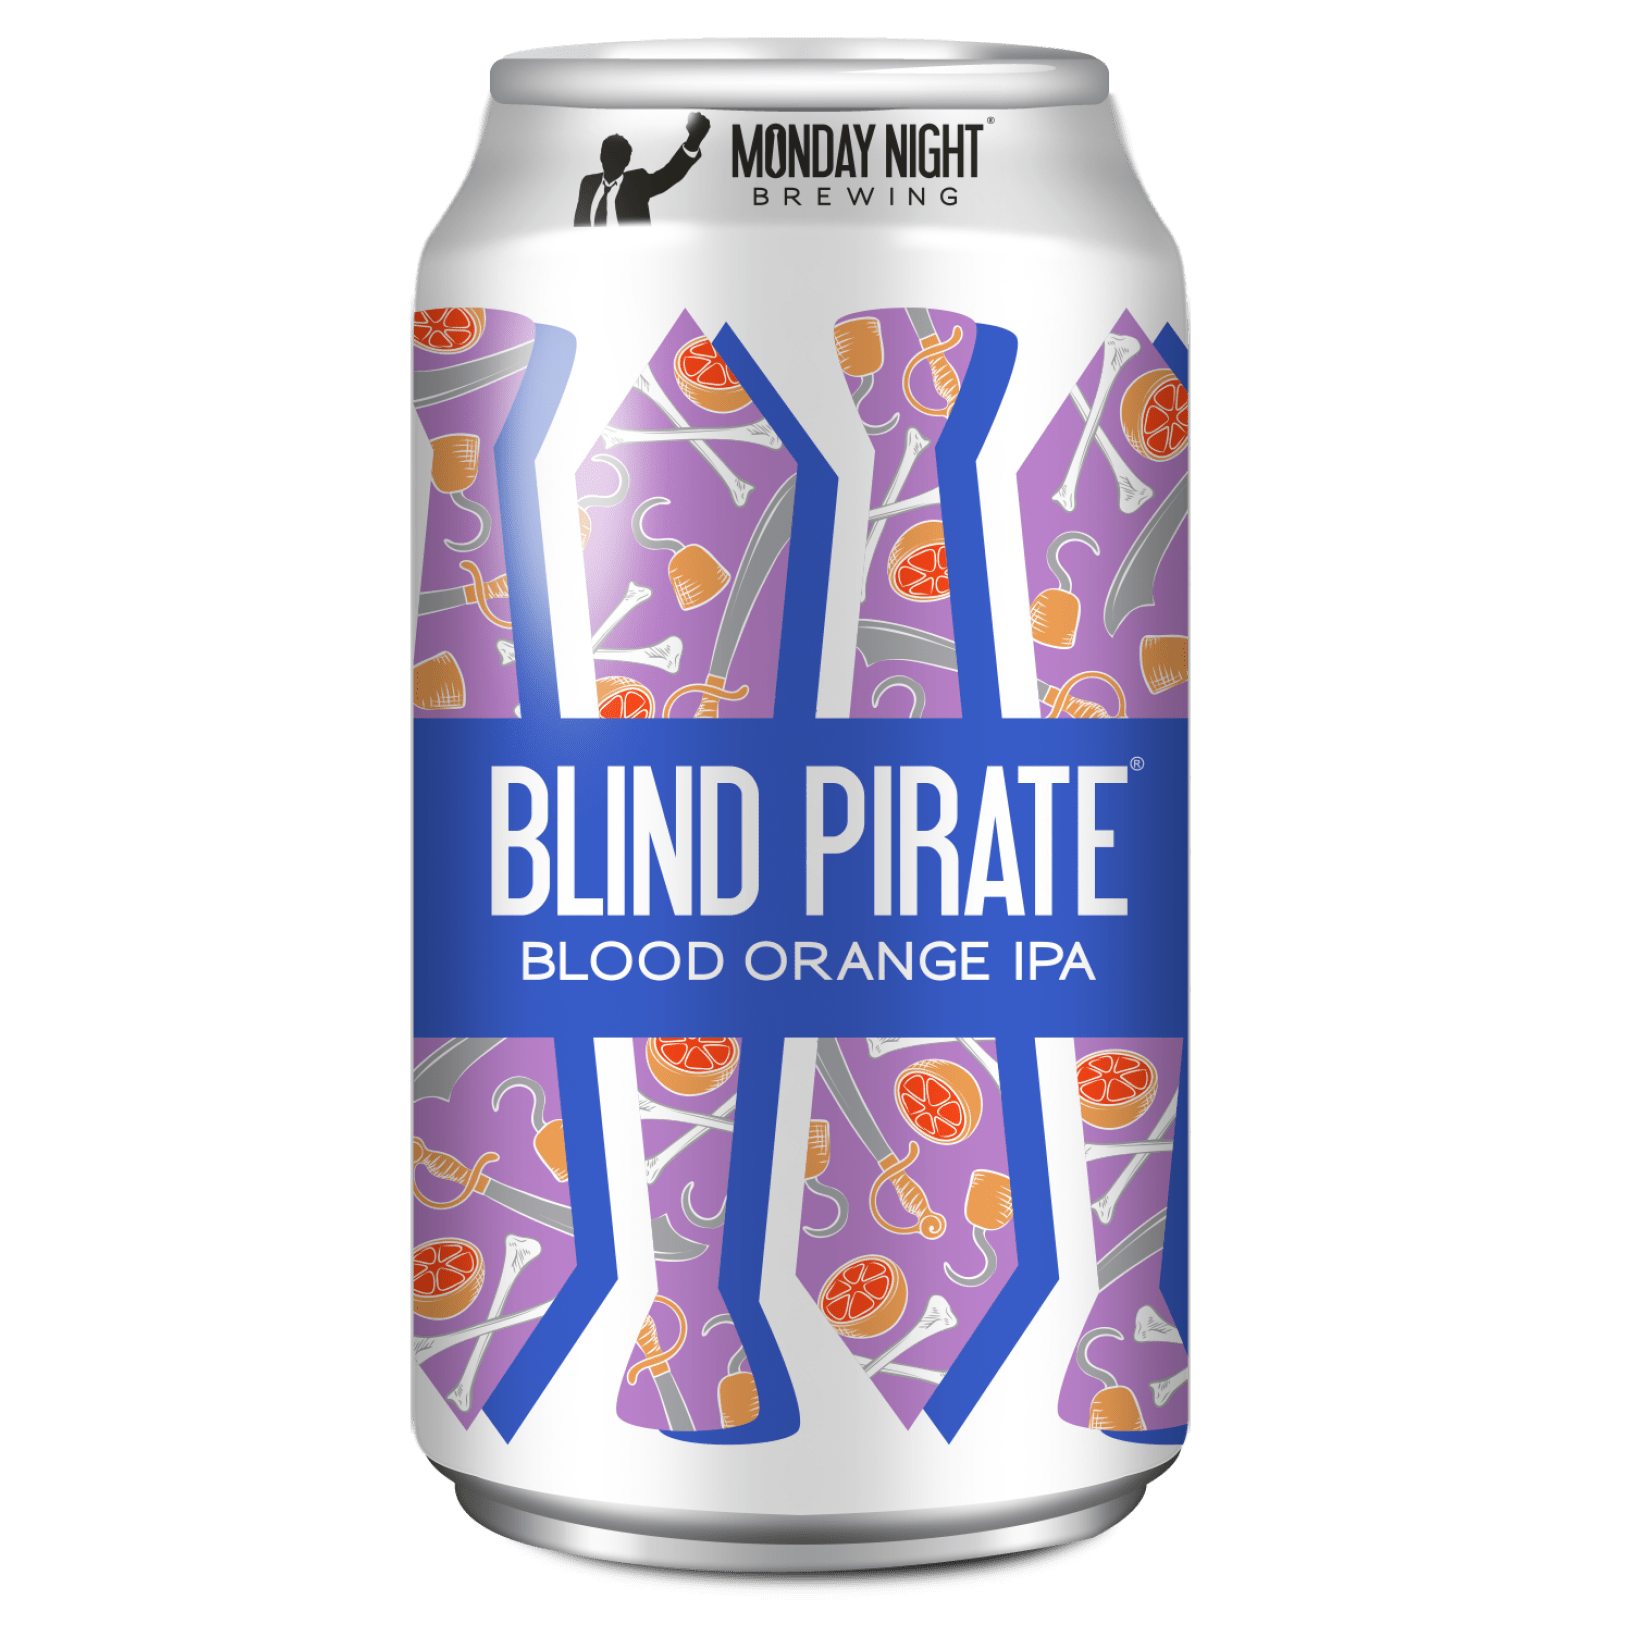 Blind Pirate